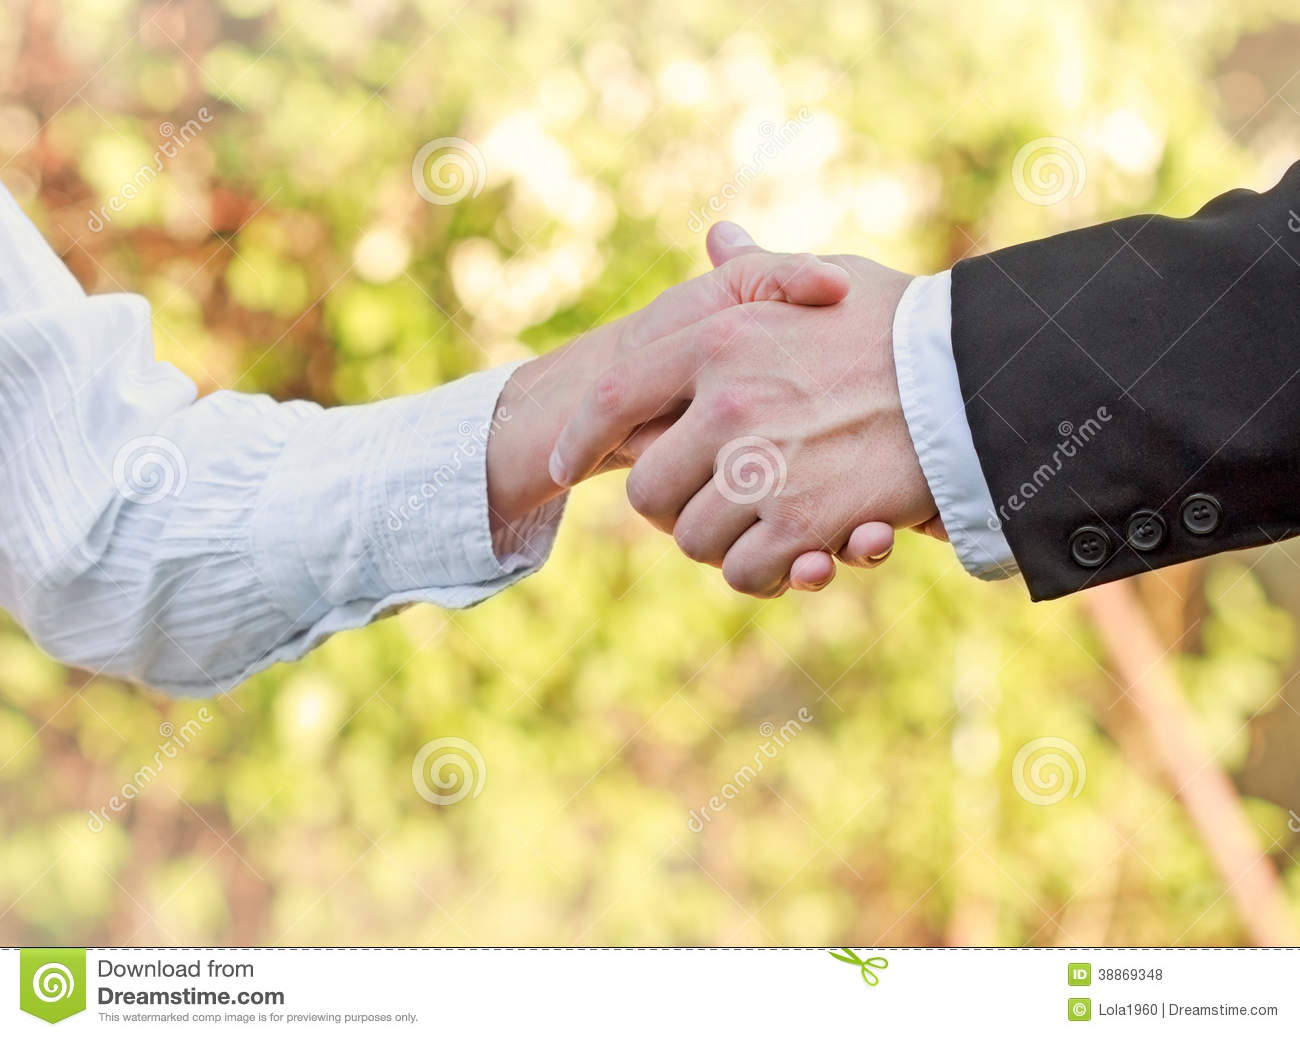 Business people handshake greeting deal at work photo free download - Business Handshake Successful Work Office Greeting